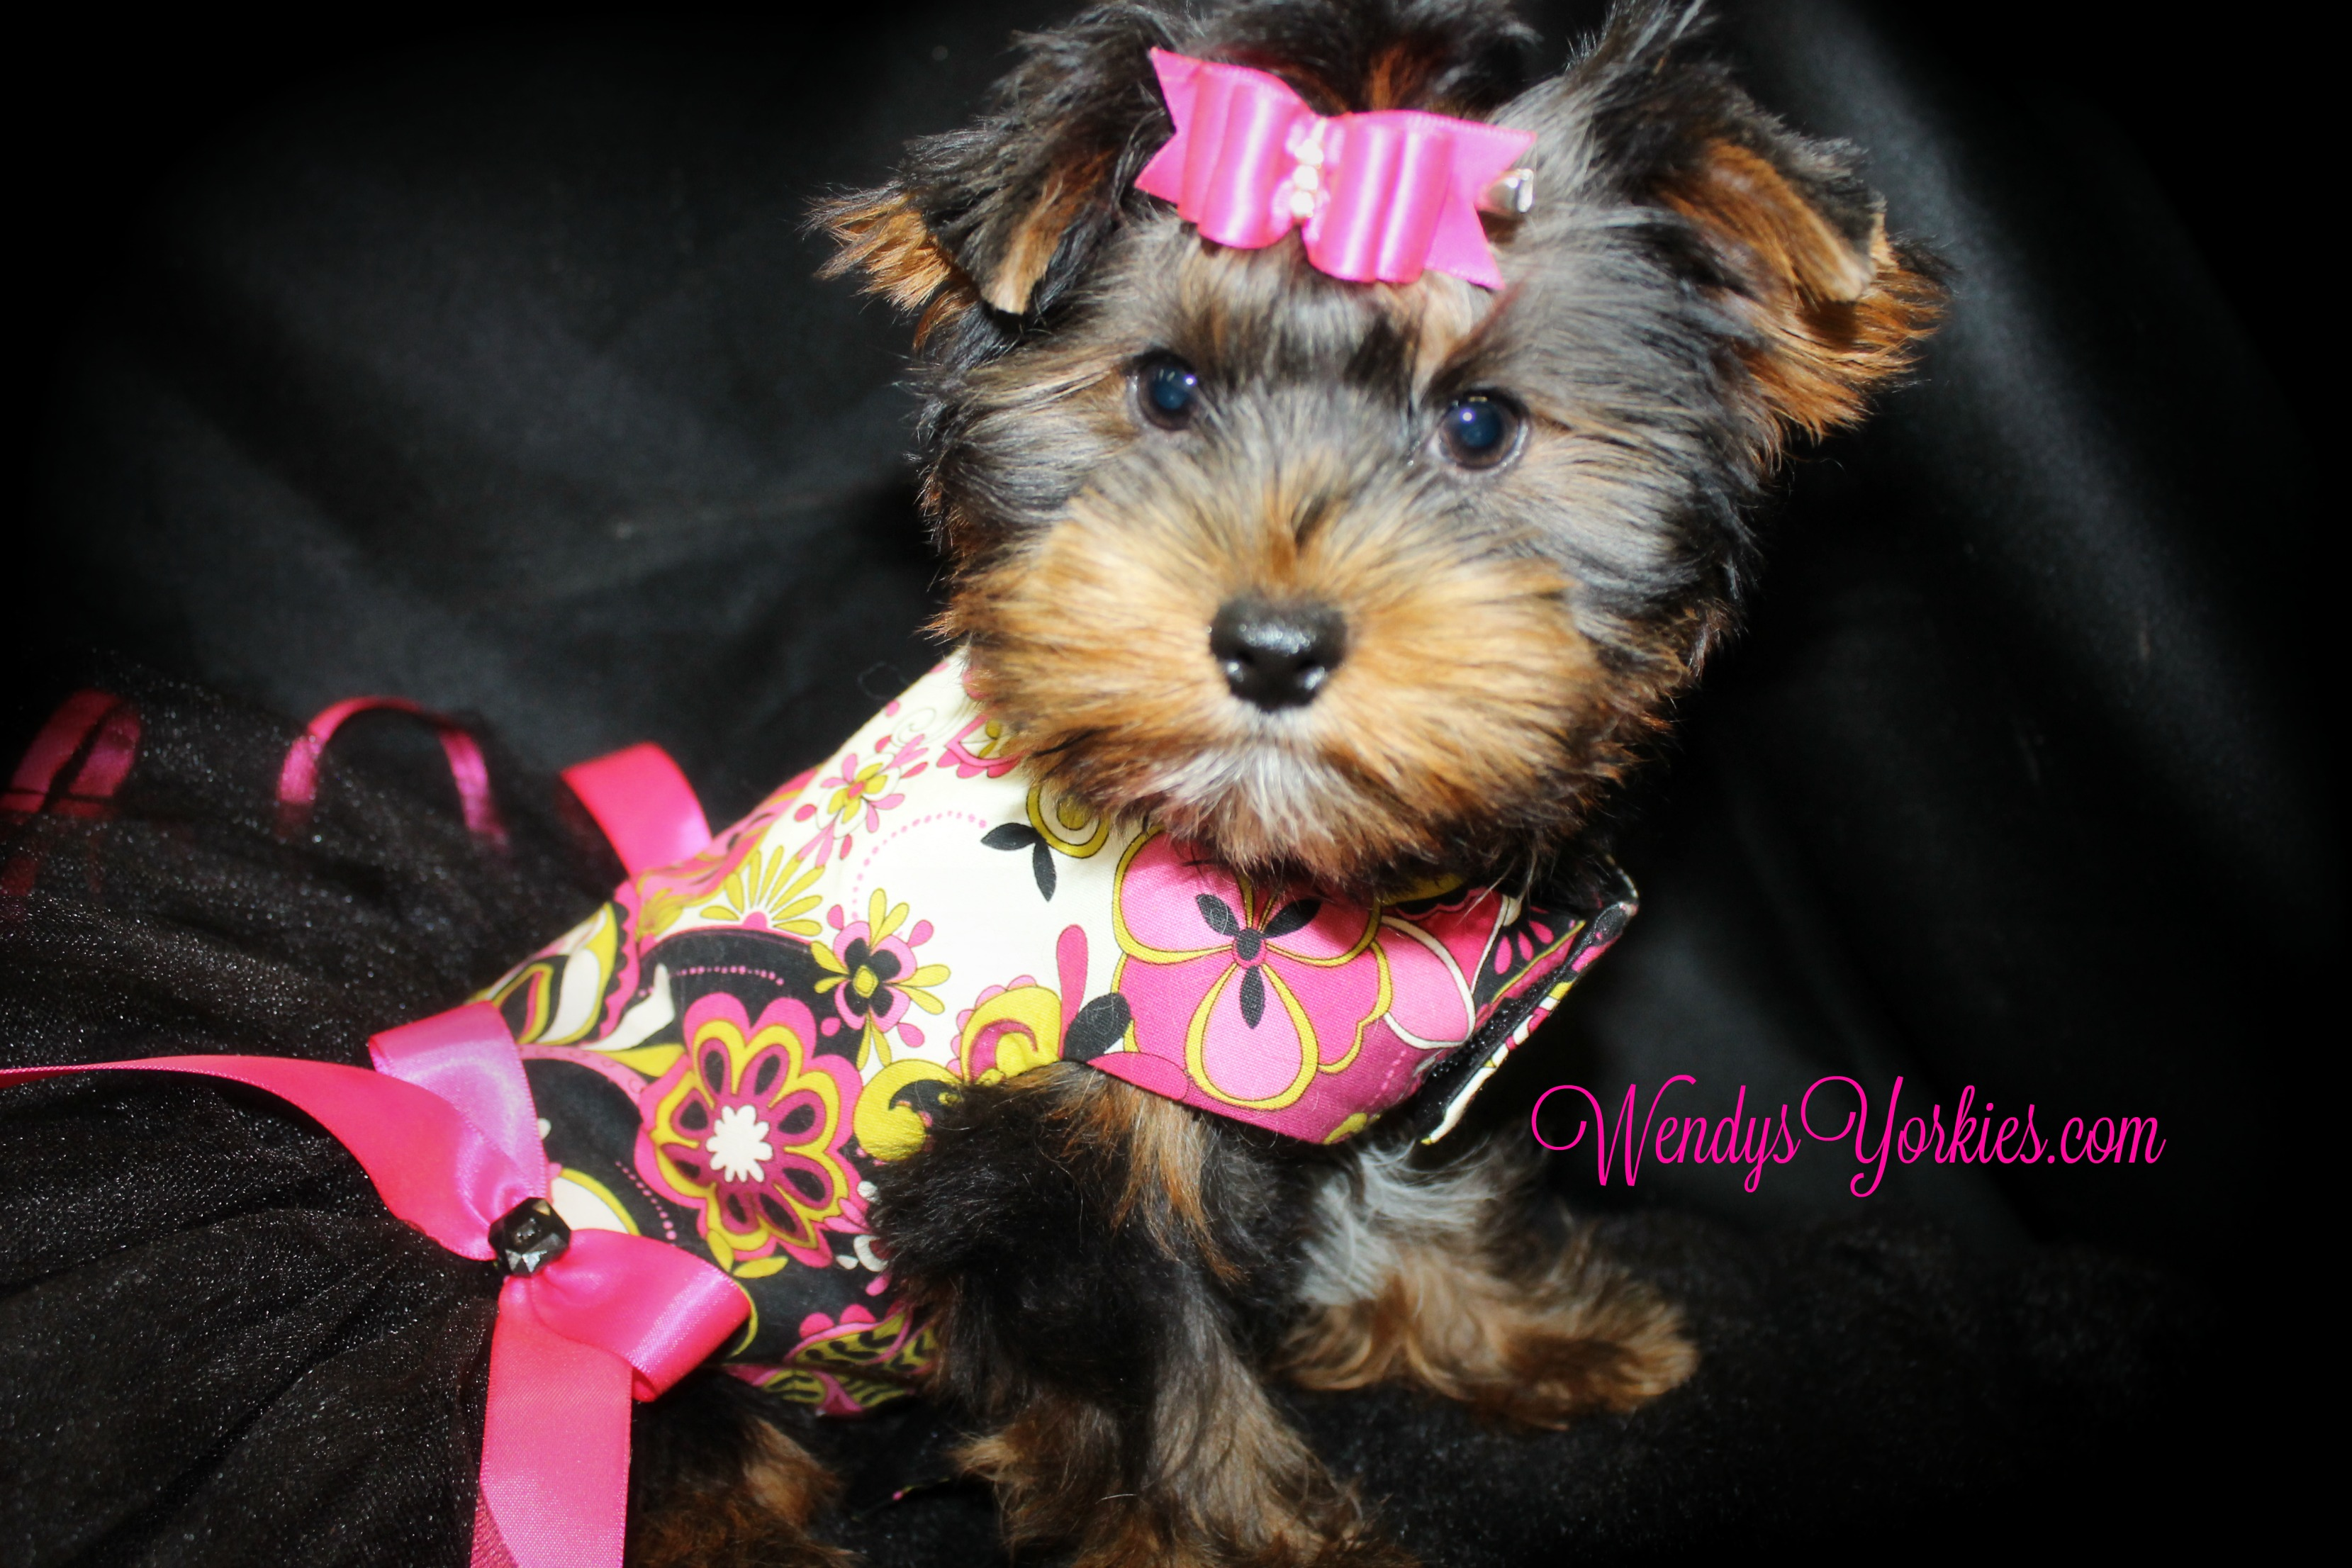 Teacup Female Yorkie puppies for sale in Texas, WendysYorkies, ChanelFancy